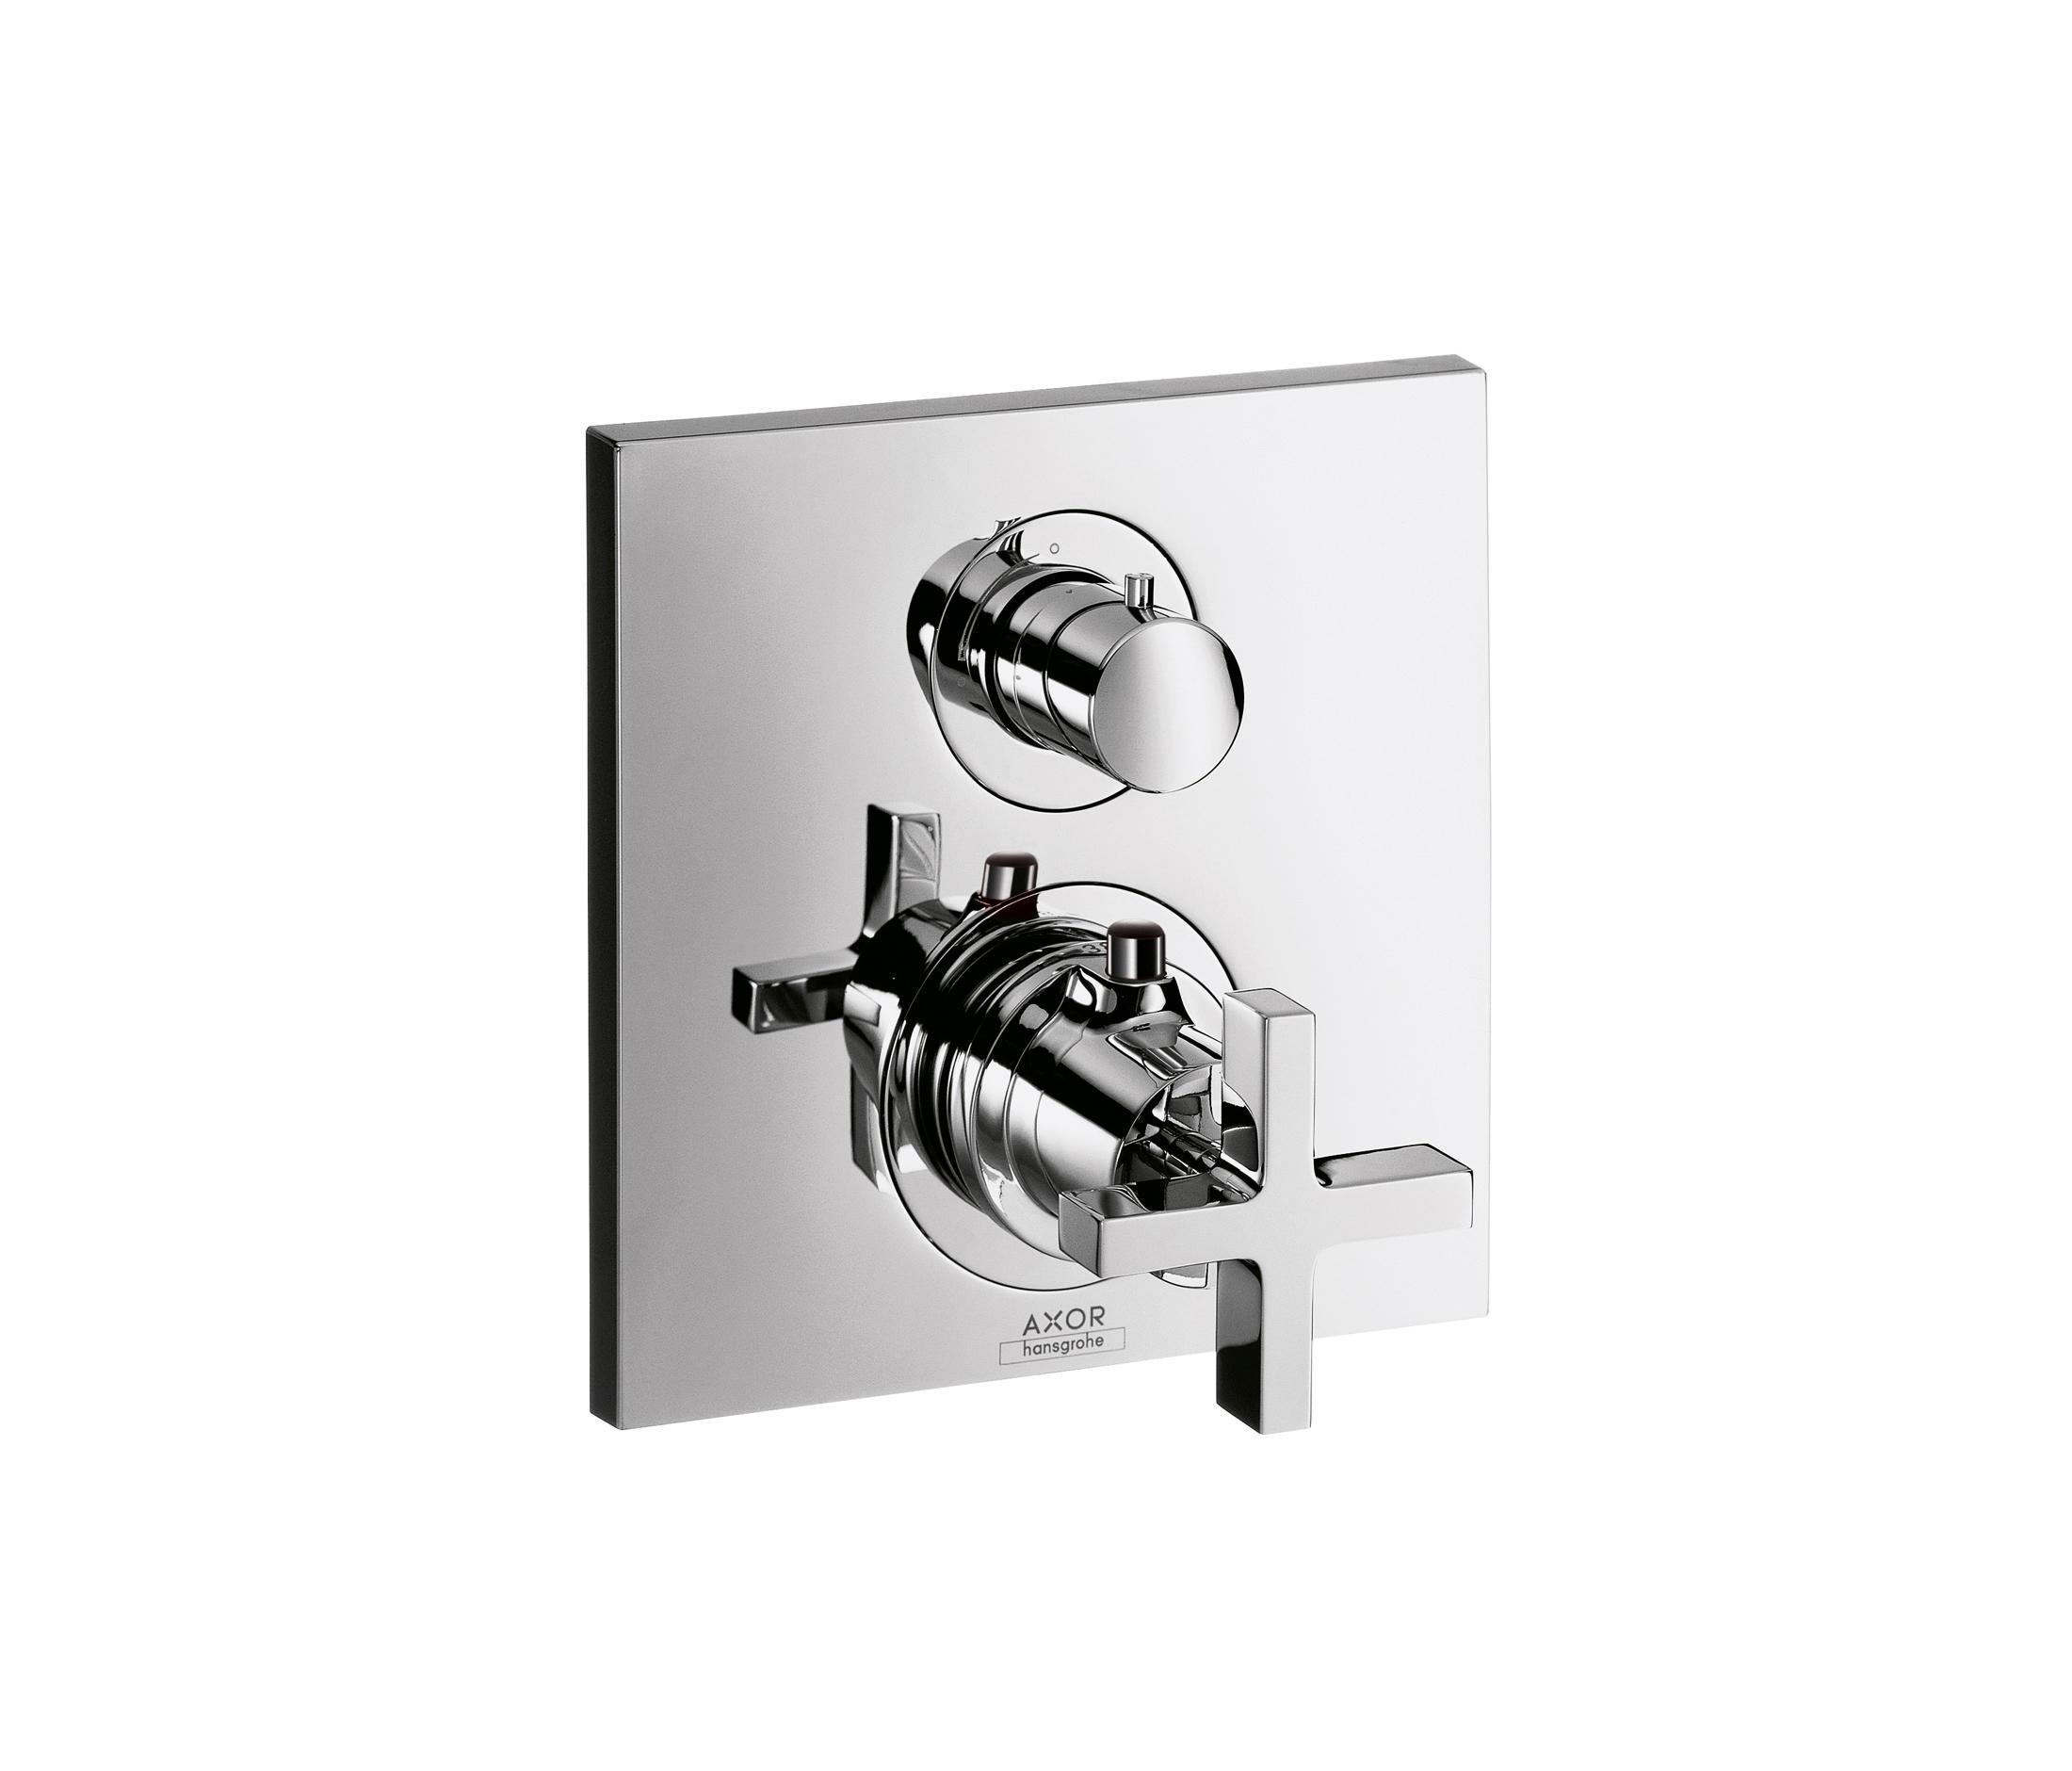 Hansgrohe thermostatic mixing valve equestrian trails